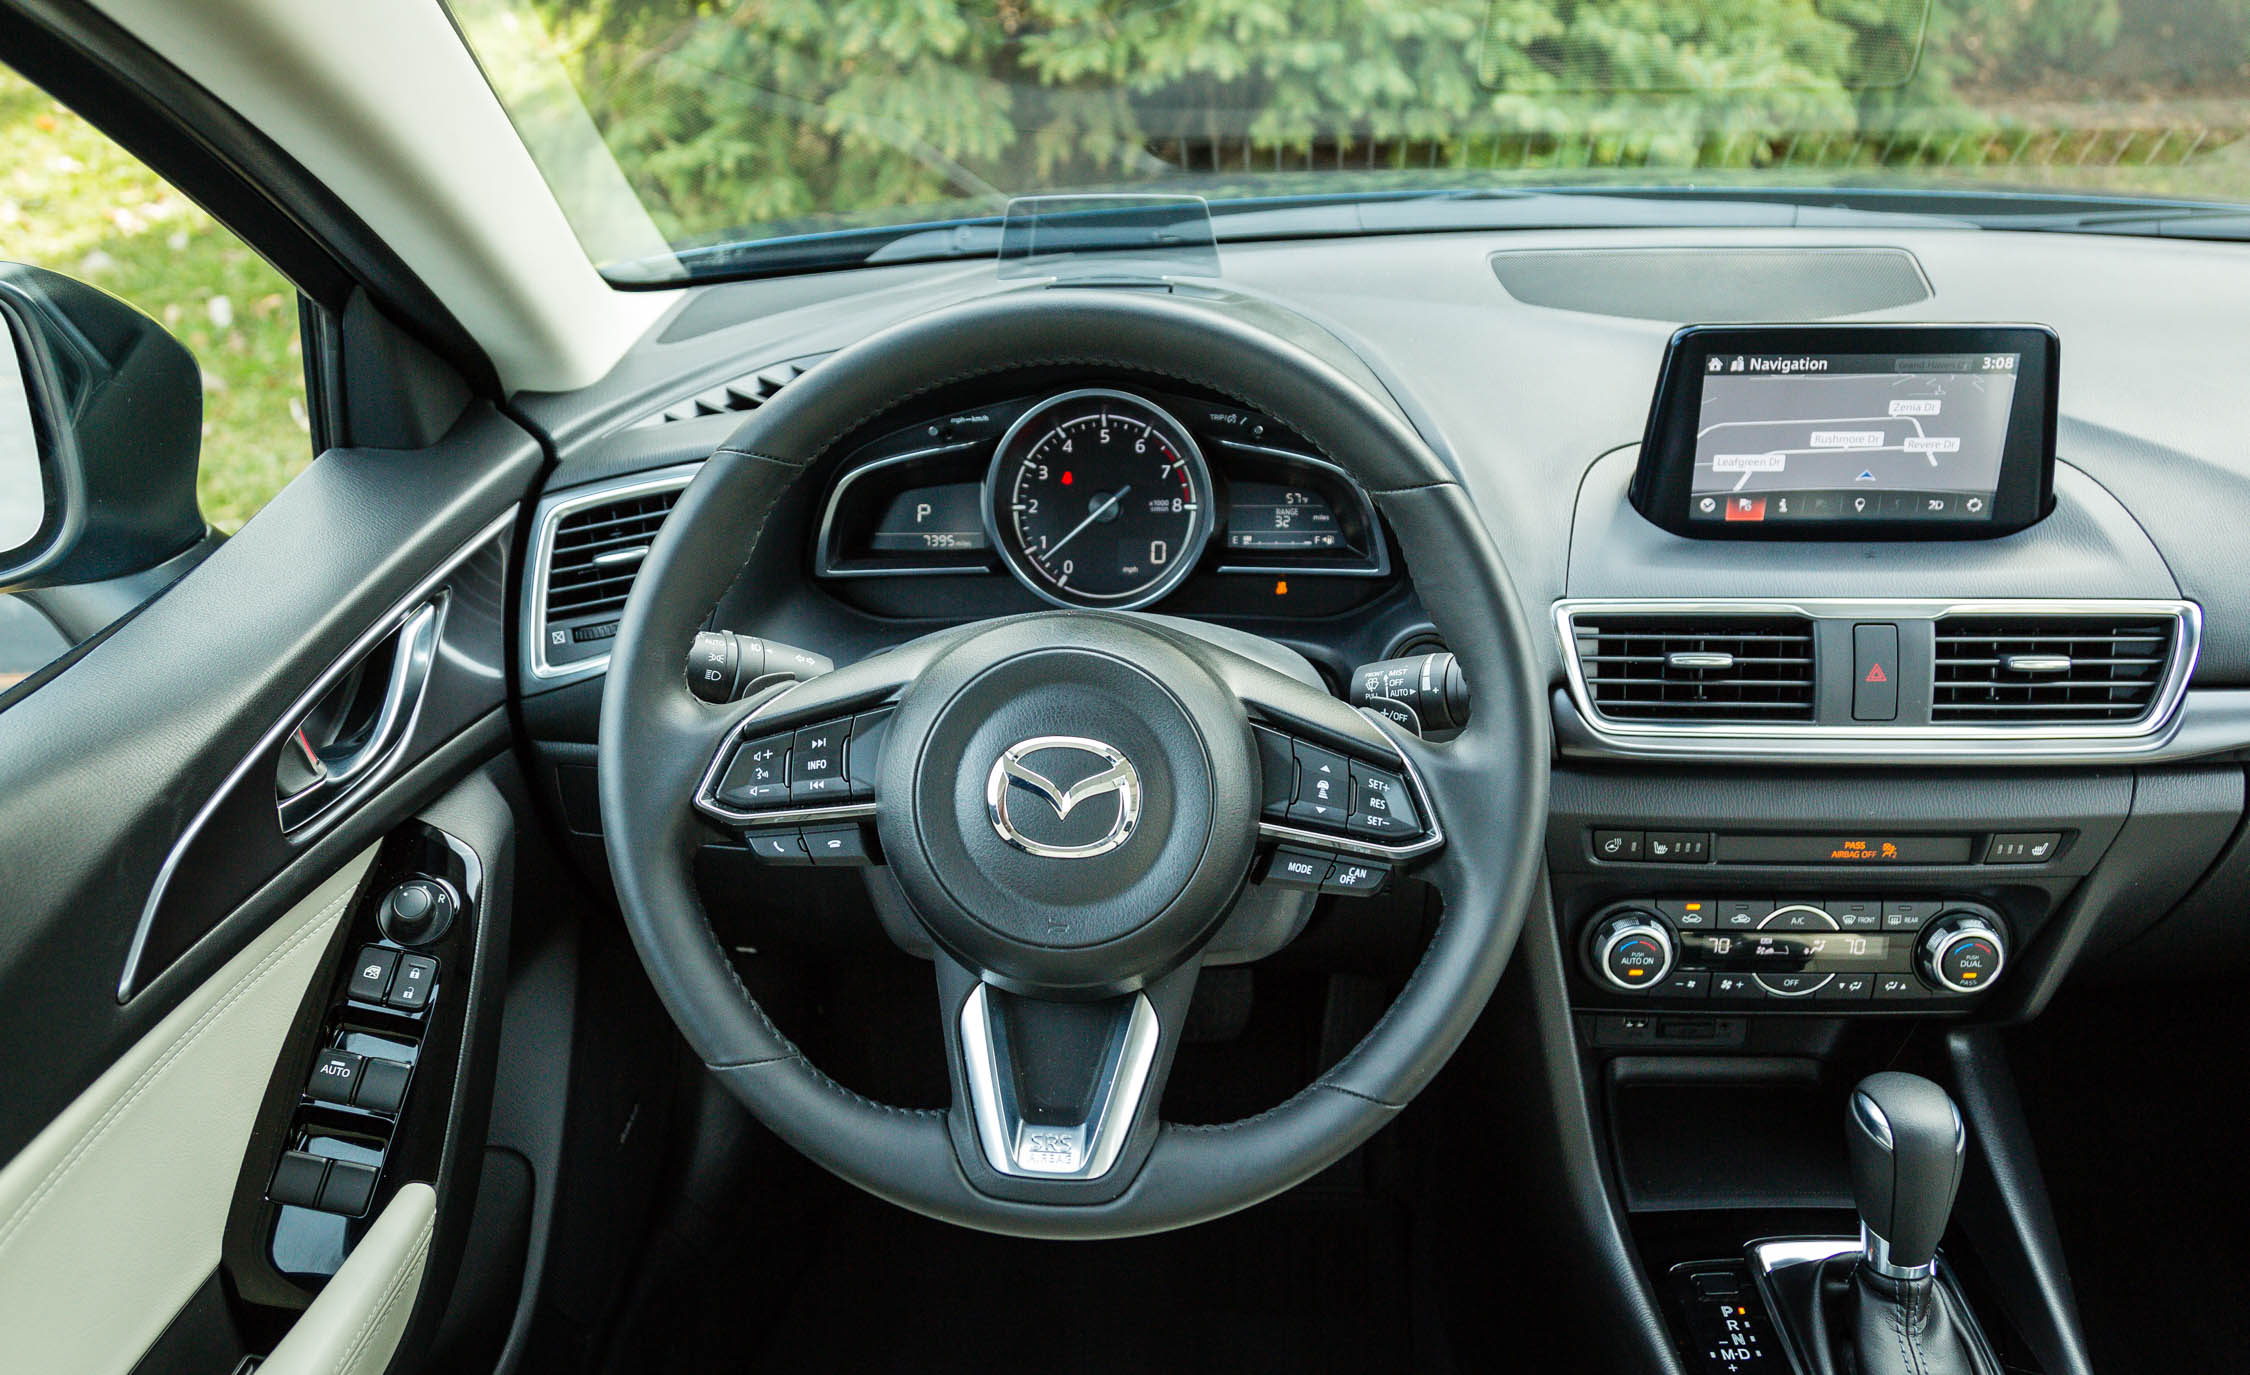 2017 Mazda 3 Grand Touring Sedan Interior View Cockpit Steering (Photo 33 of 51)